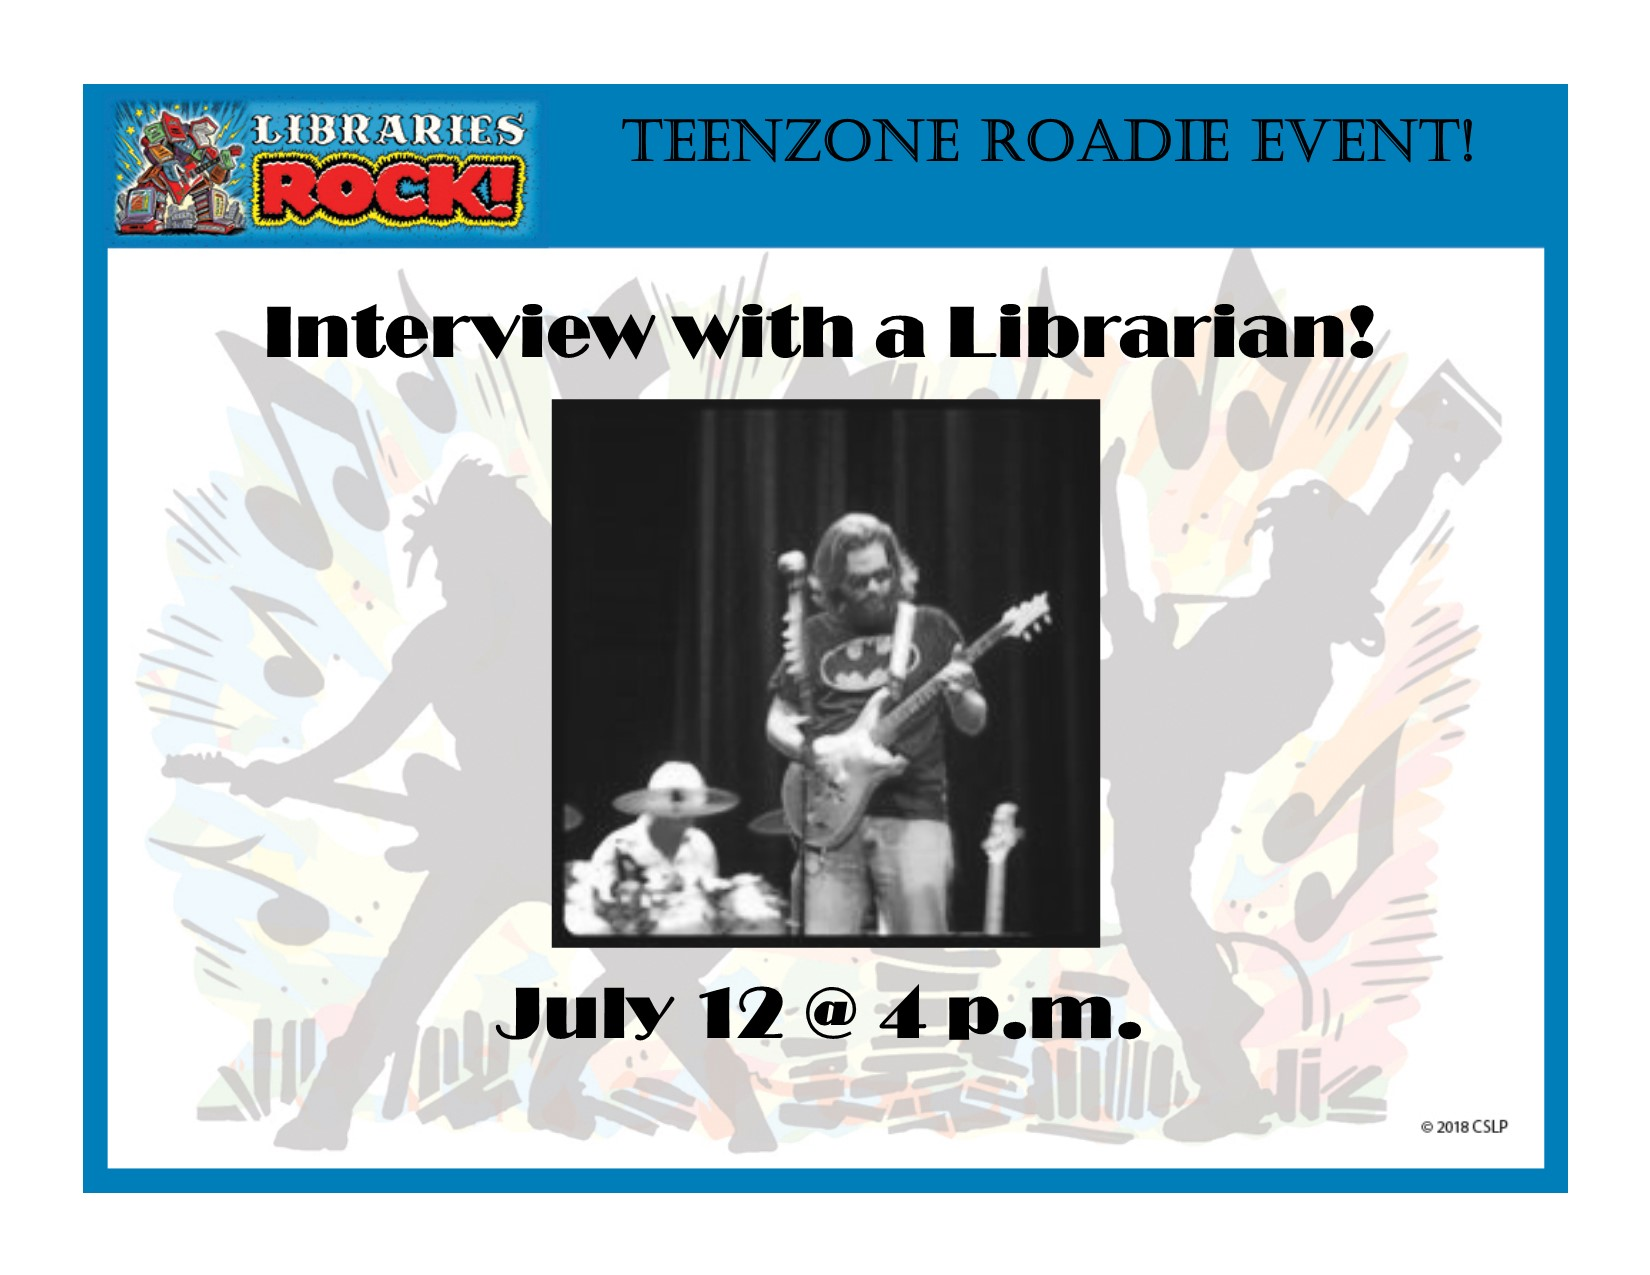 Interview a librarian and learn the behind-the-scenes work that makes this a fun job!